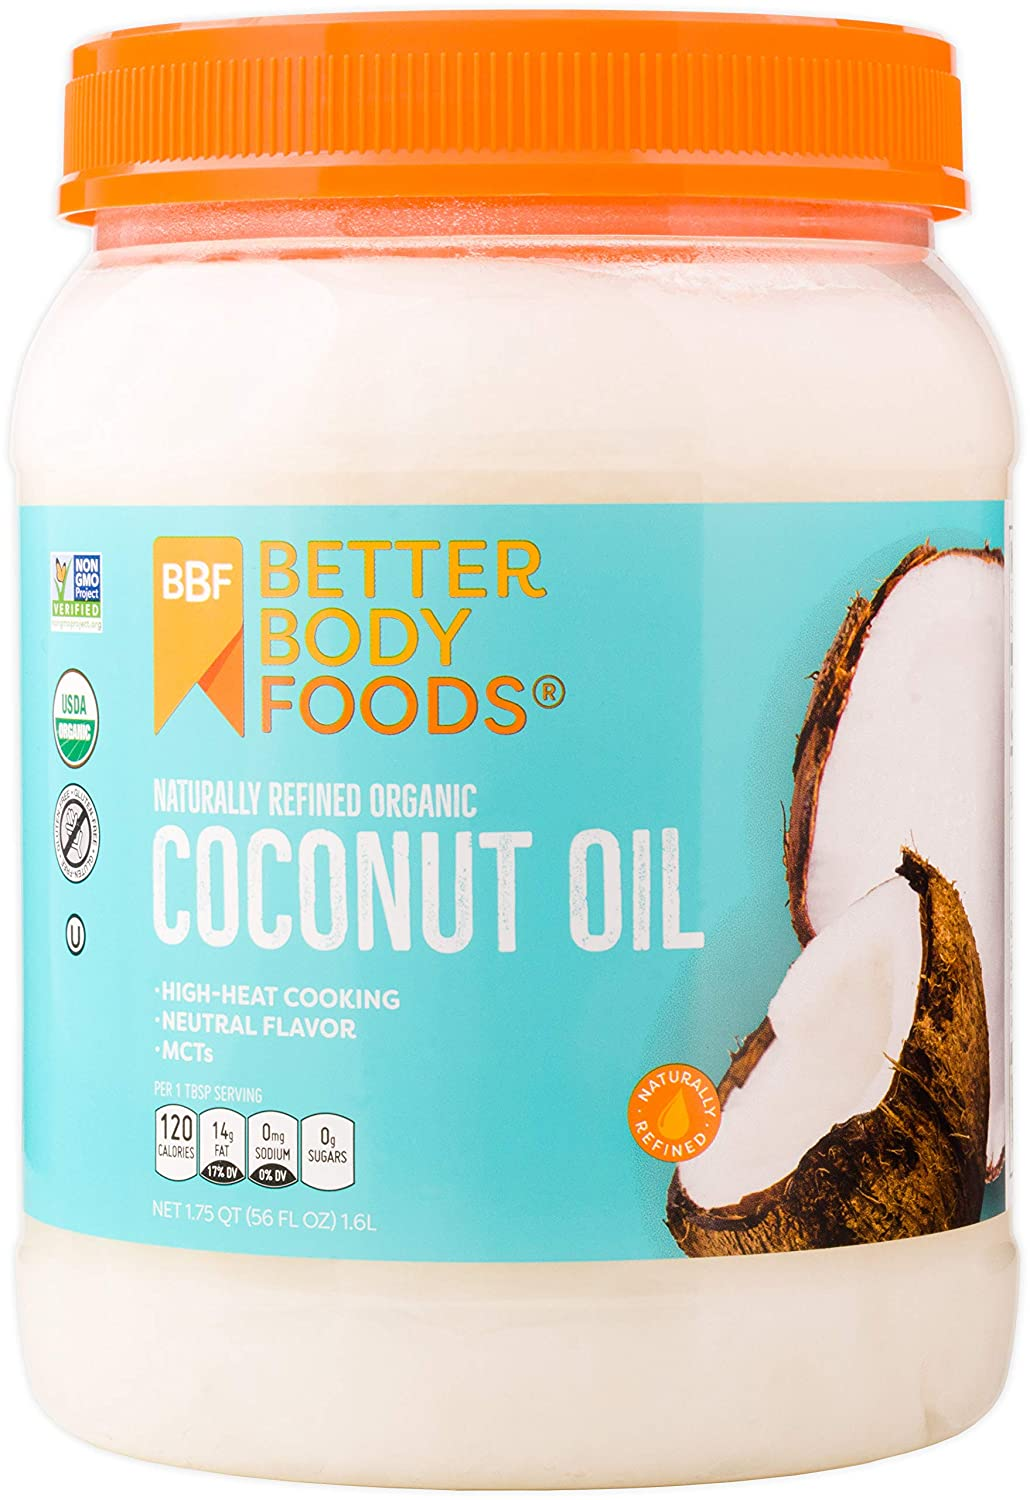 Better Body Foods coconut oil. Do visit these 23 Smart Quarantine Pantry Supplies for Social Isolation I Ordered. #quarantinesupplies #pantryitems #nonperishables